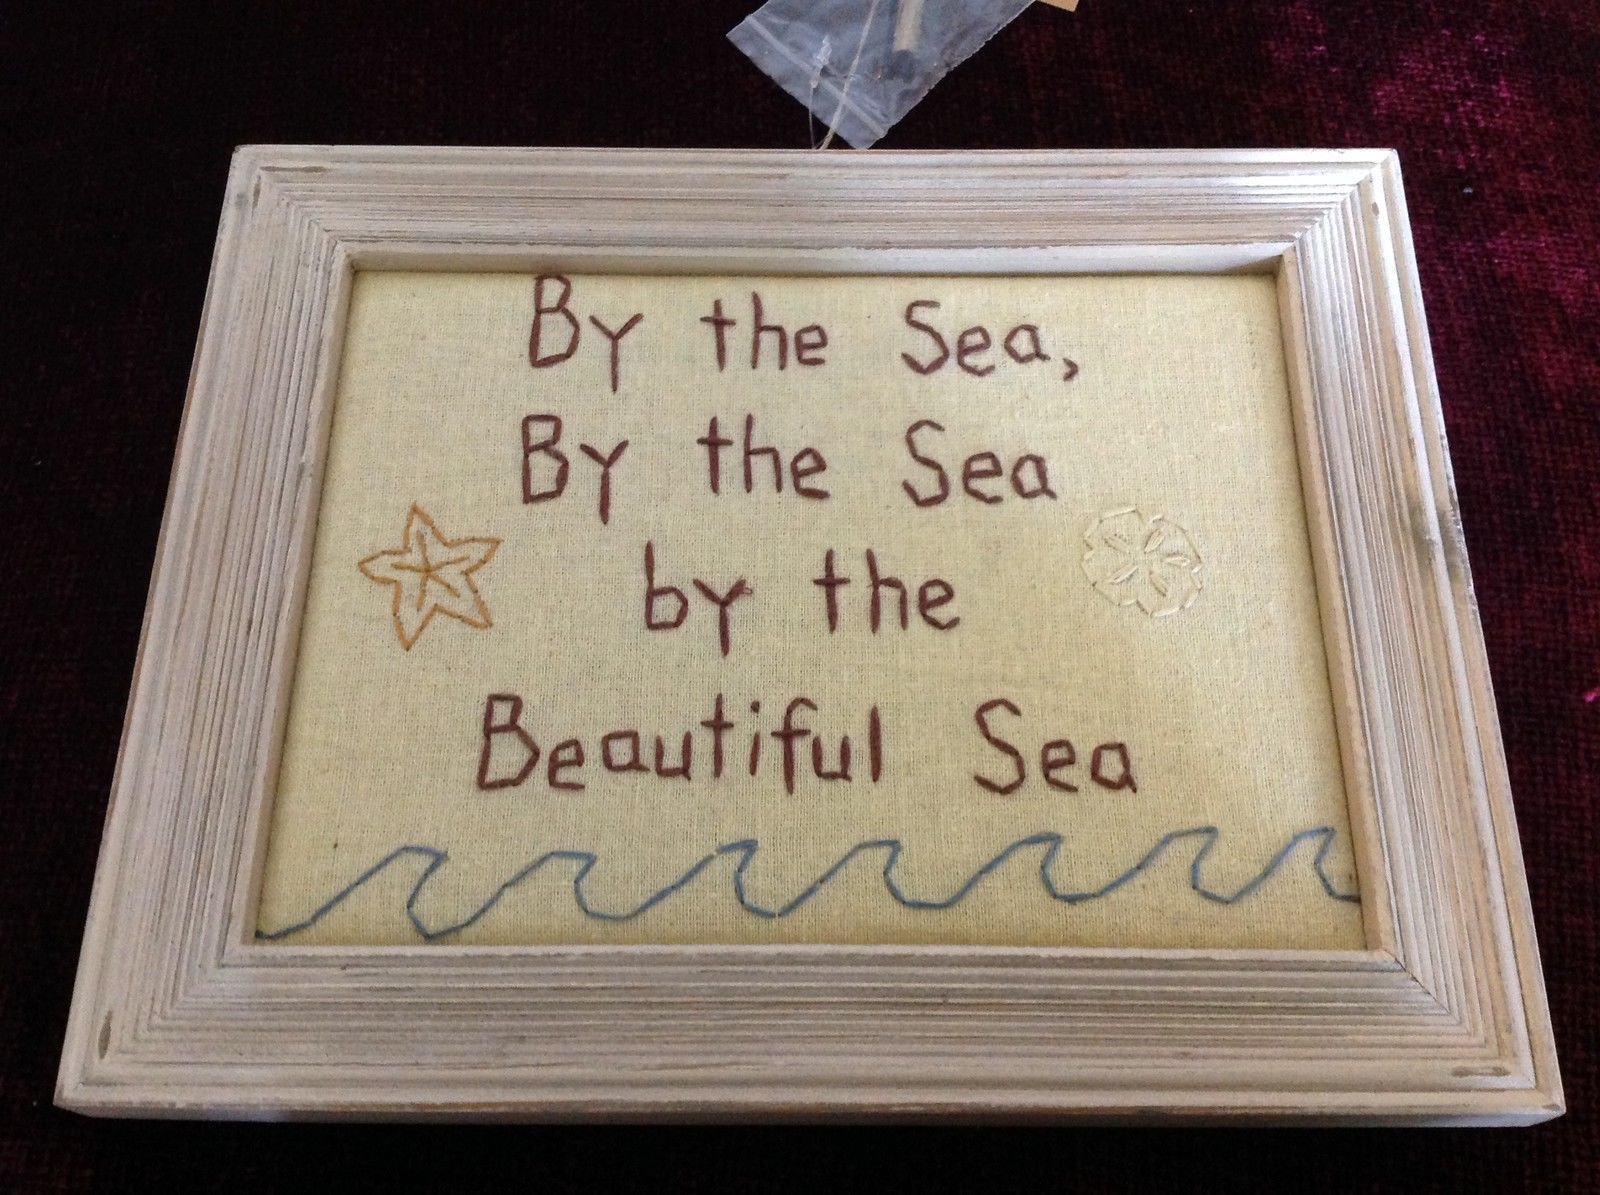 New Primitives Stitchery By the Sea By the Sea By the Beautiful Sea Wall Hanging